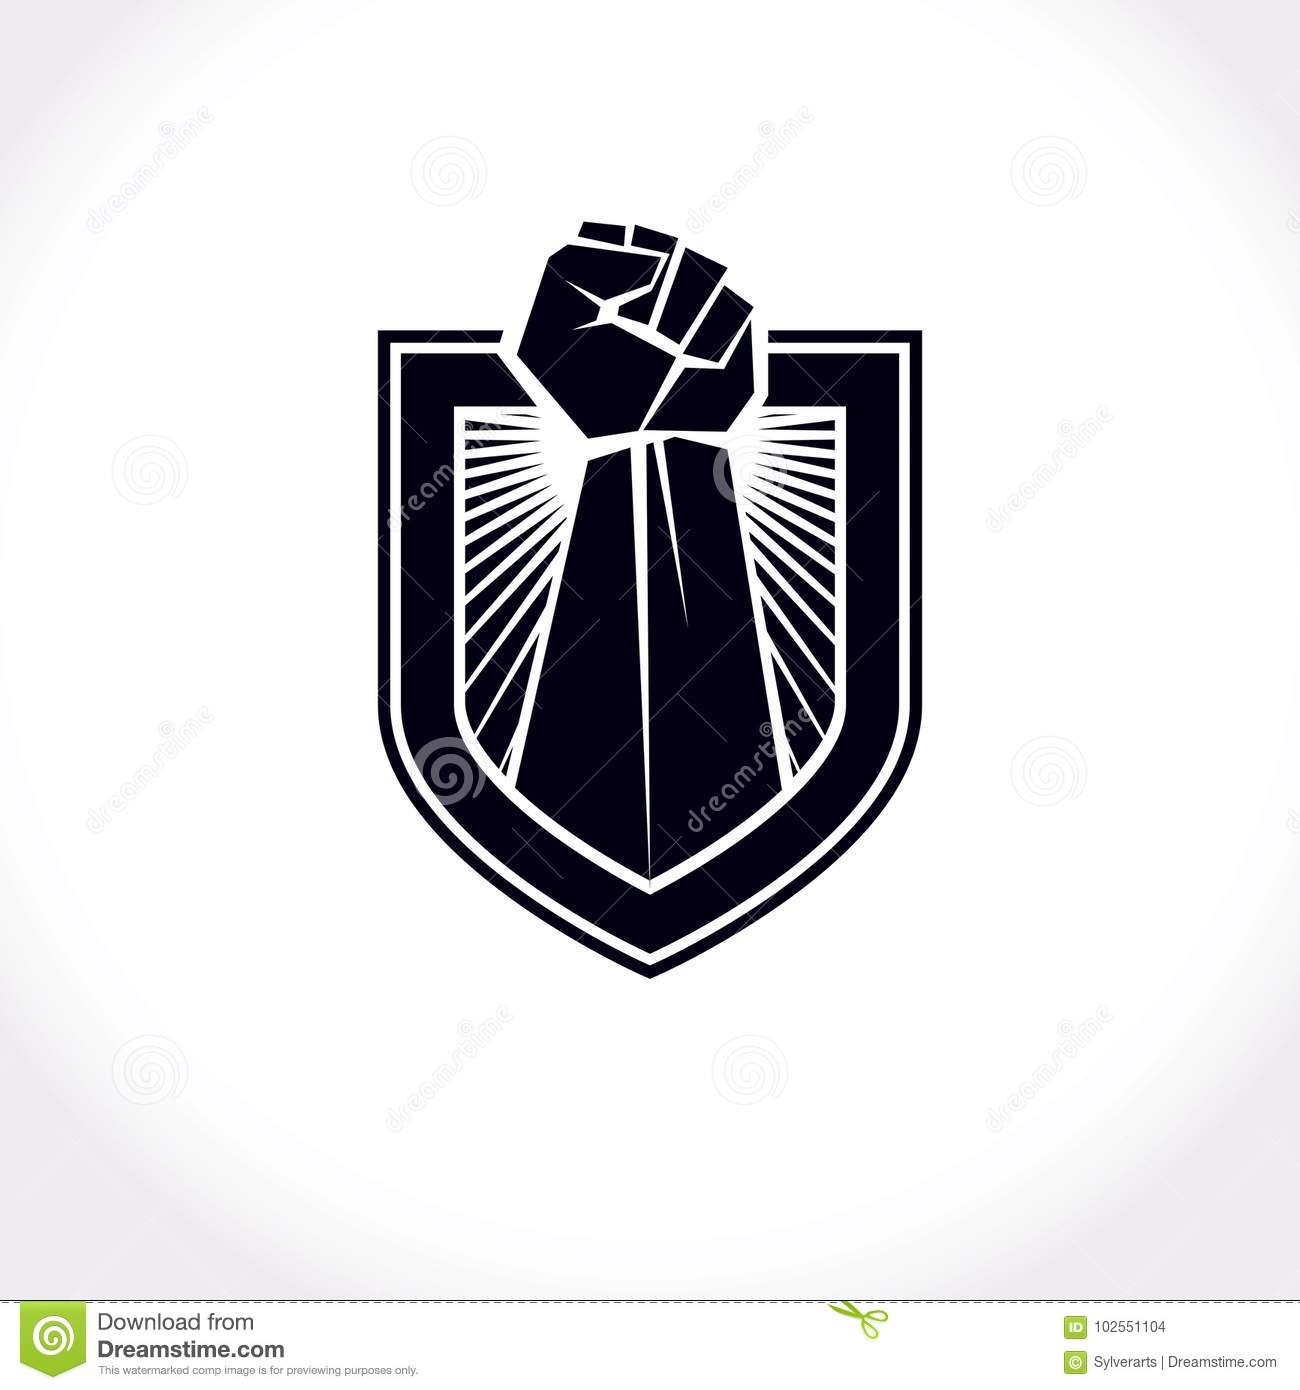 Proletarian leader abstract symbol, vector red clenched fist raised up.